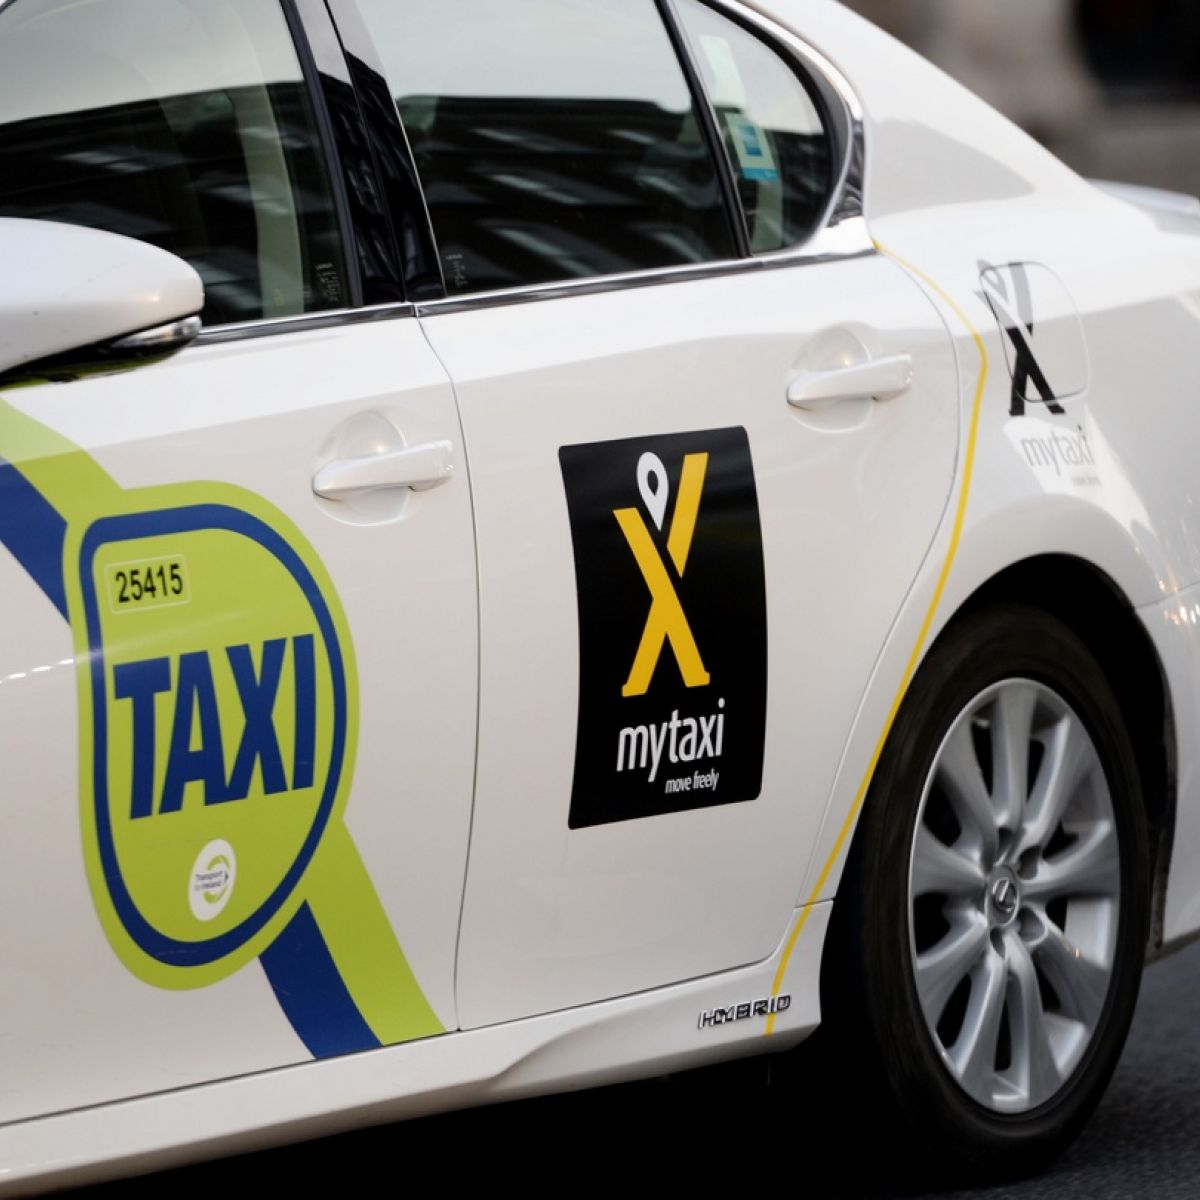 How Mytaxi killed Irish taxis and now owns the future